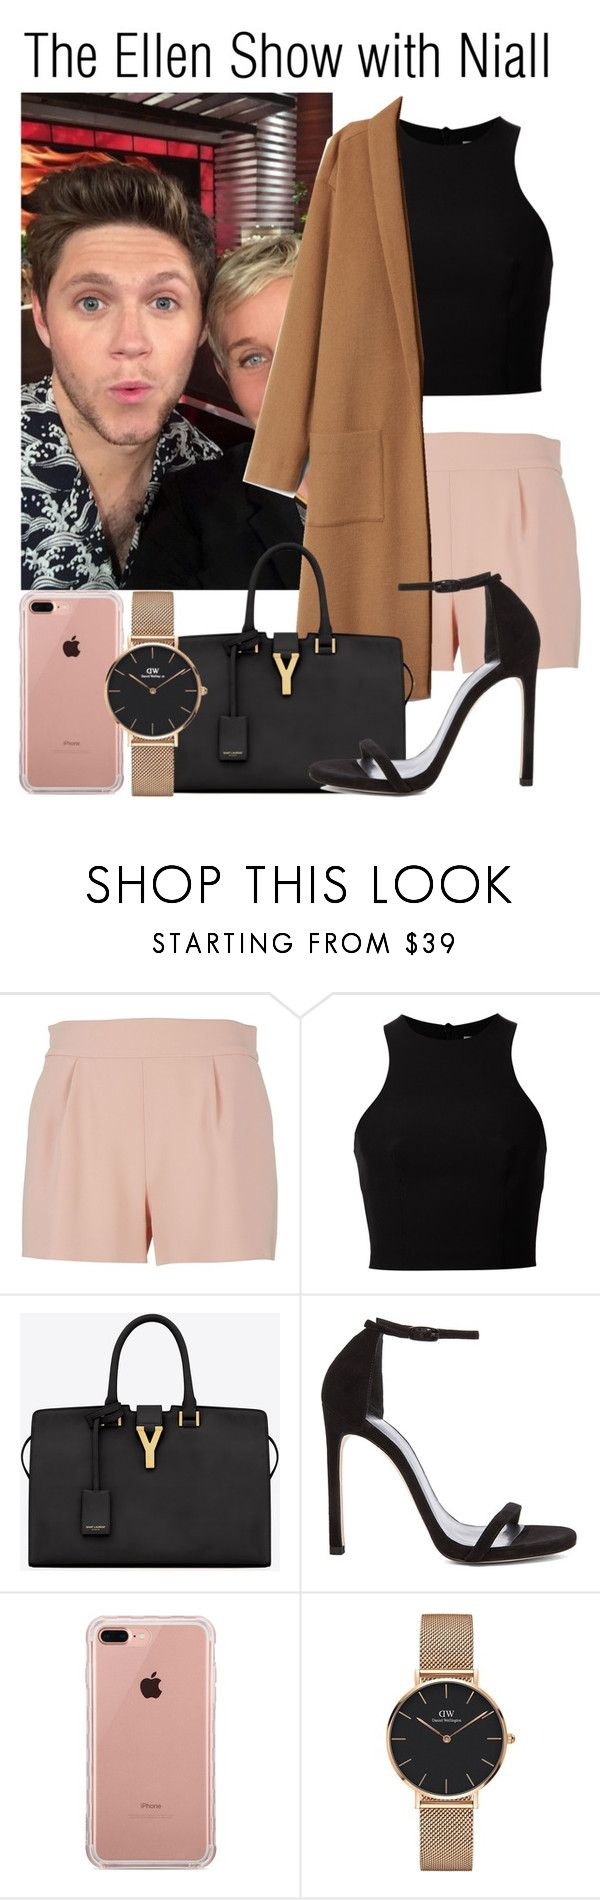 """""""The Ellen Show with Niall (boyfriend)"""" by babedirectionerx ❤ liked on Polyvore featuring Moschino, T By Alexander Wang, Yves Saint Laurent, Stuart Weitzman, Belkin, Daniel Wellington and NiallHoran"""